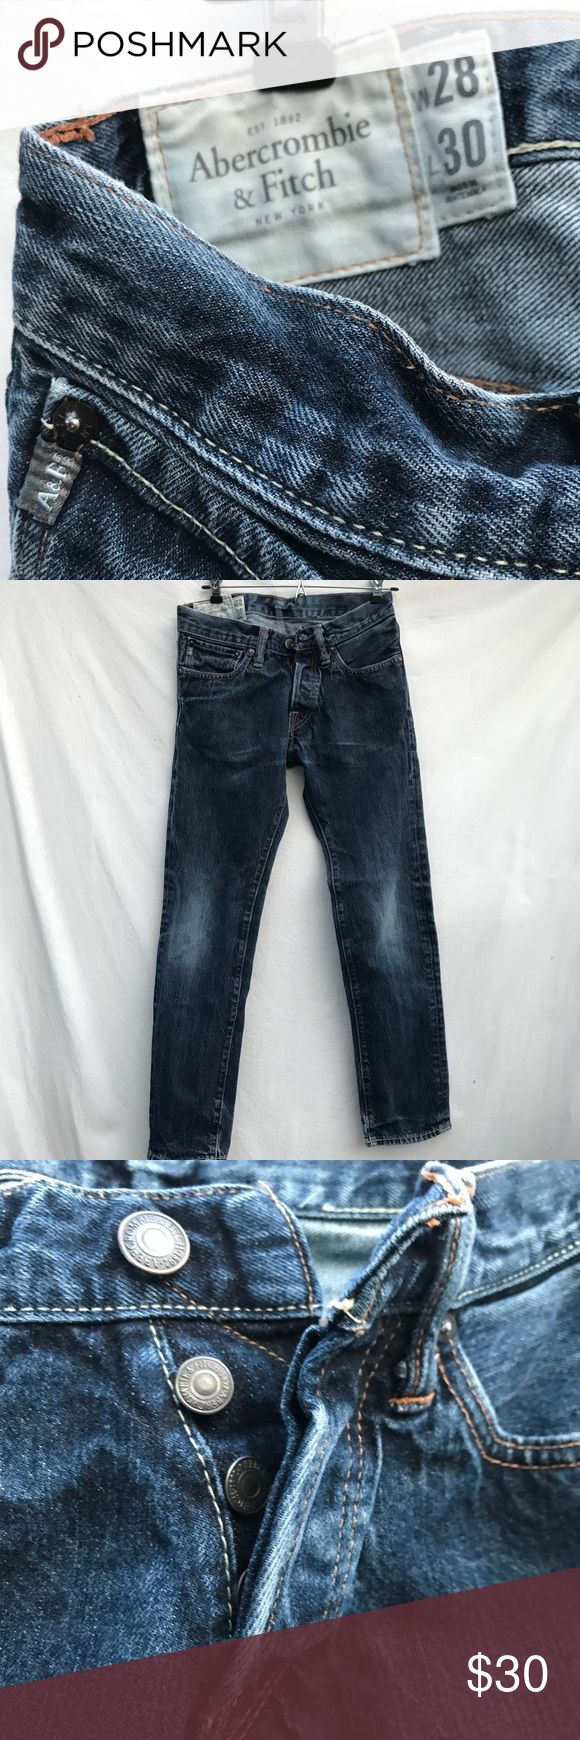 Abercrombie men's low rise skinny button fly 28x30 Men's Abercrombie low rise skinny jeans button  size 28x30 Jeans Skinny